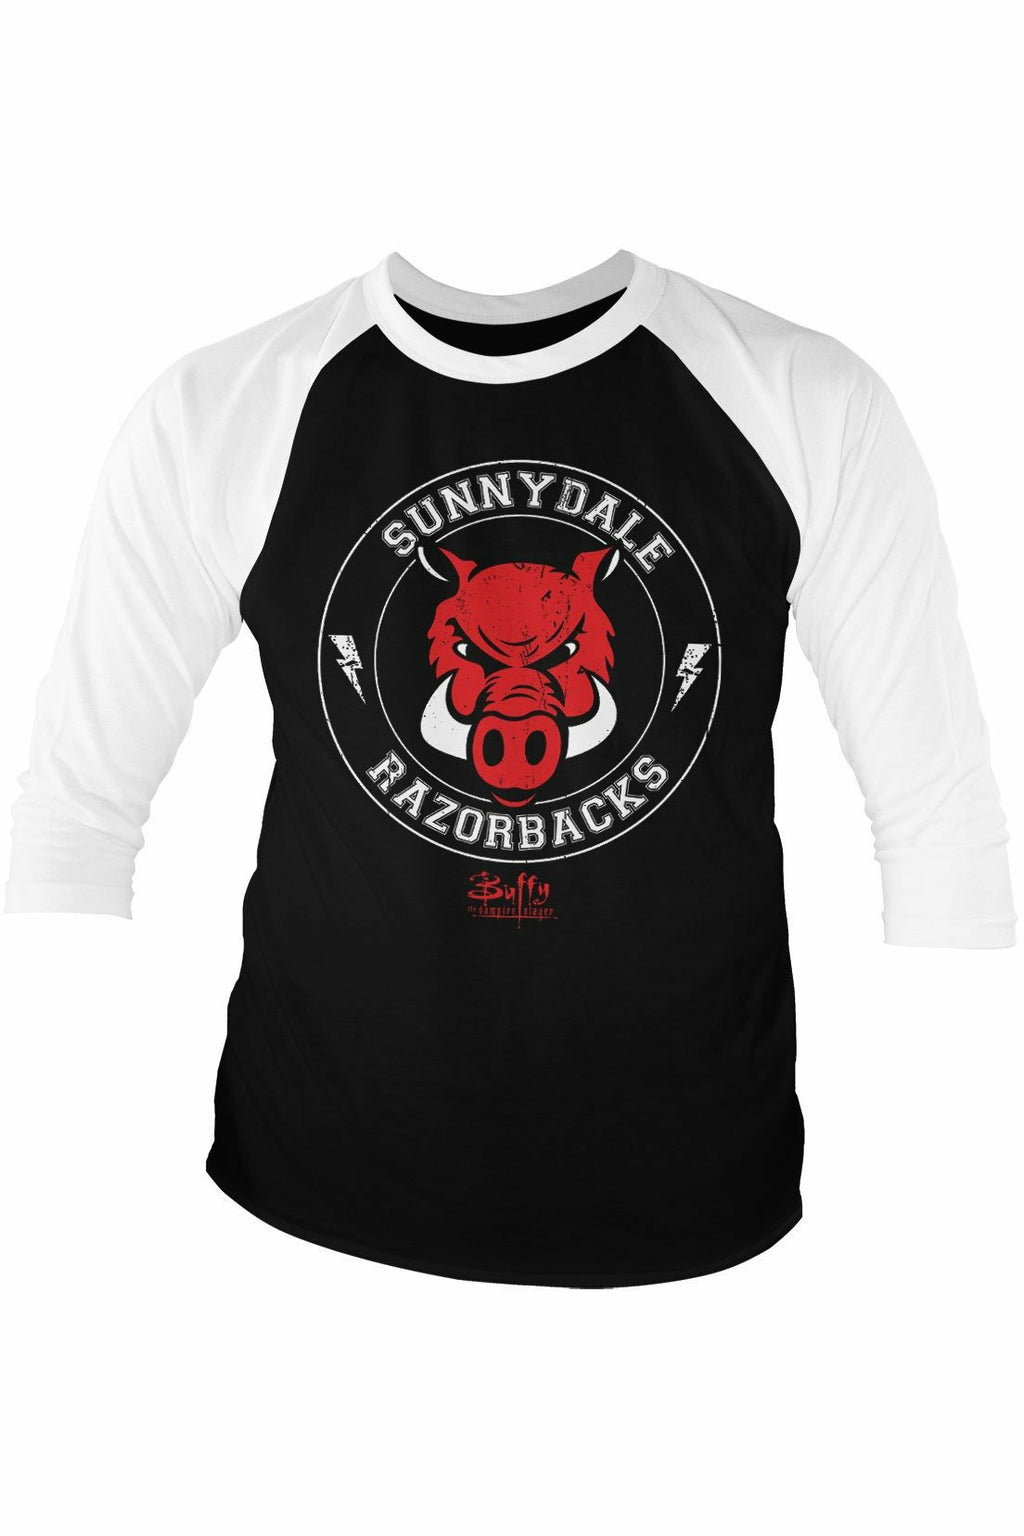 Buffy The Vampire : Sunnydale Razorbacks Baseball Top